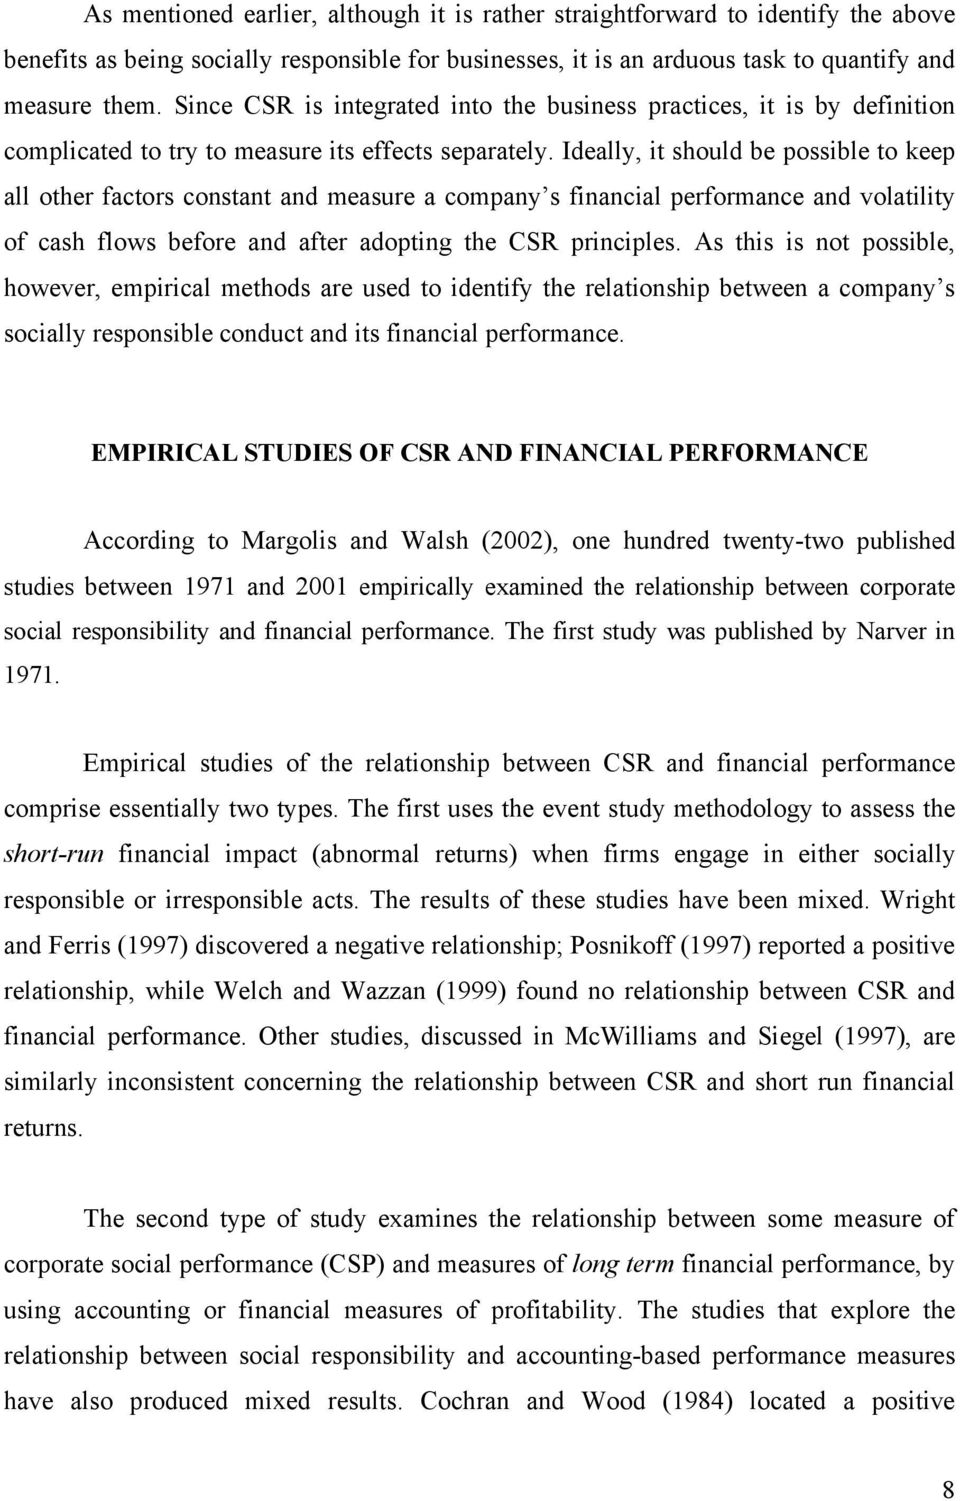 relationship between corporate social responsibility and profitability